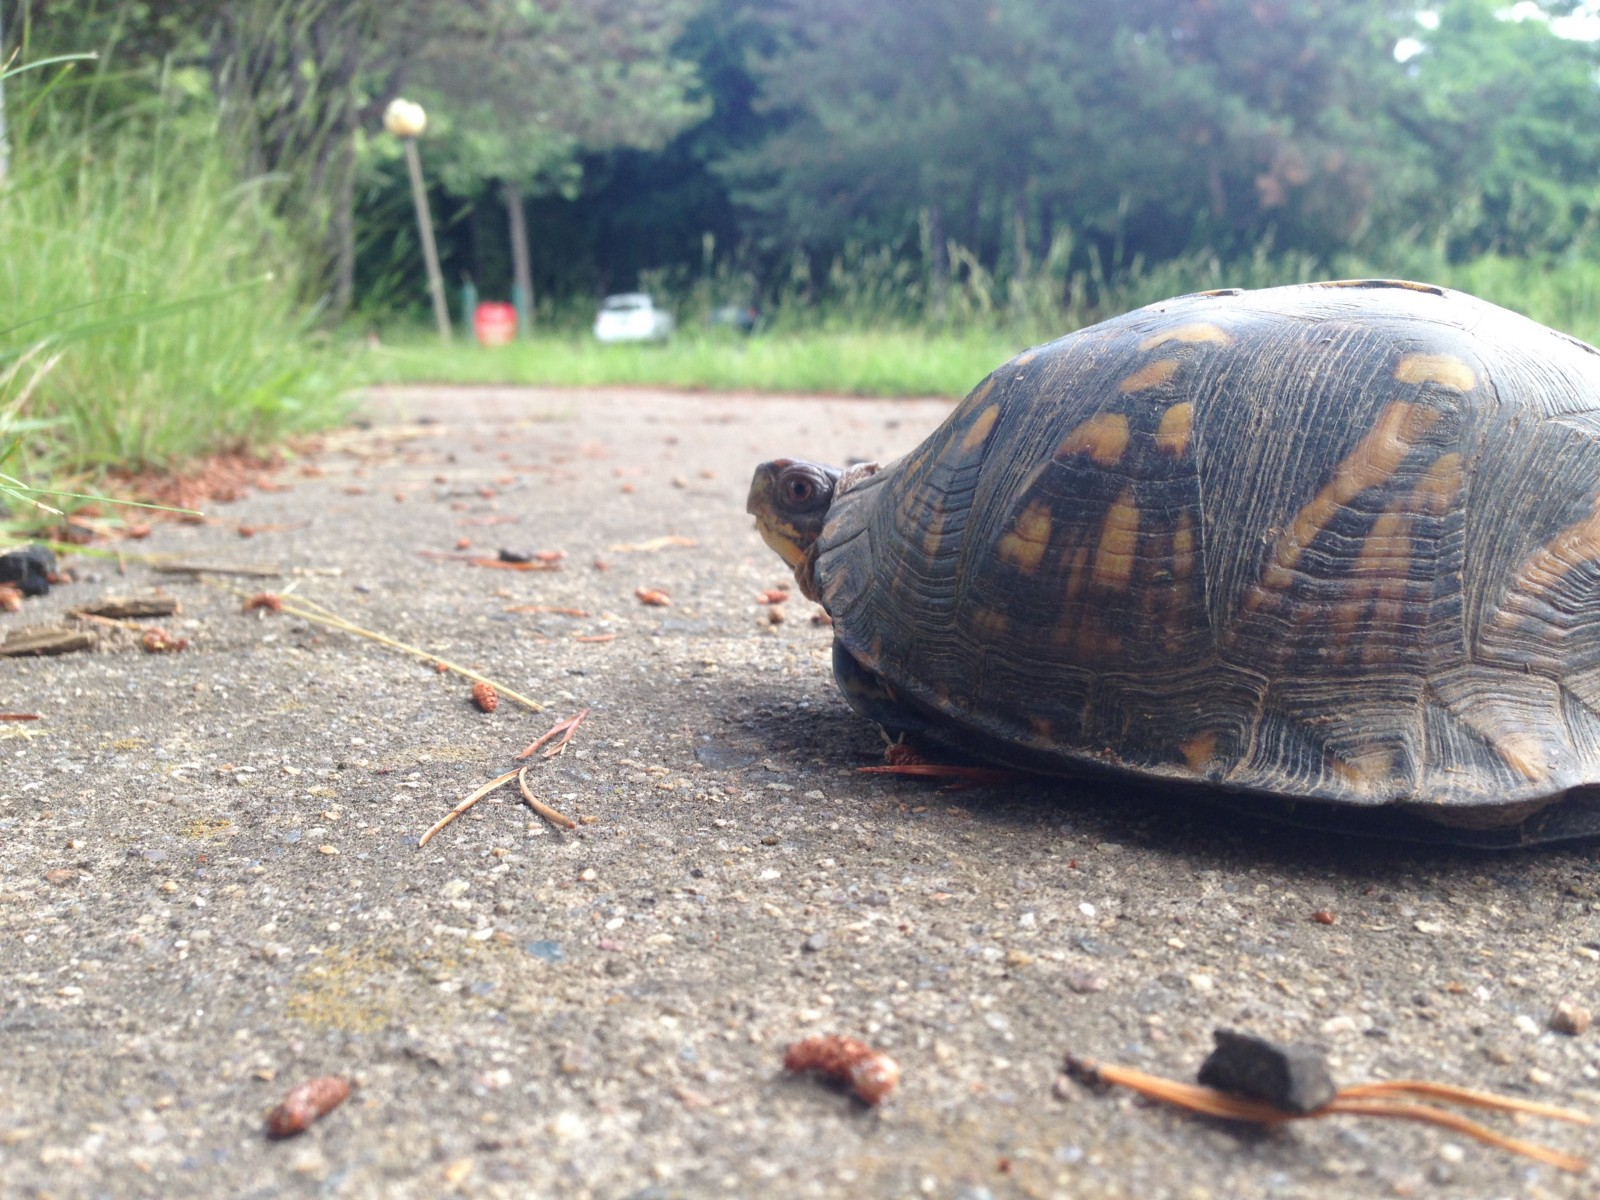 Turtles are crossing the road fish and wildlife service news photo eastern box turtle by danielle brigida usfws sciox Image collections